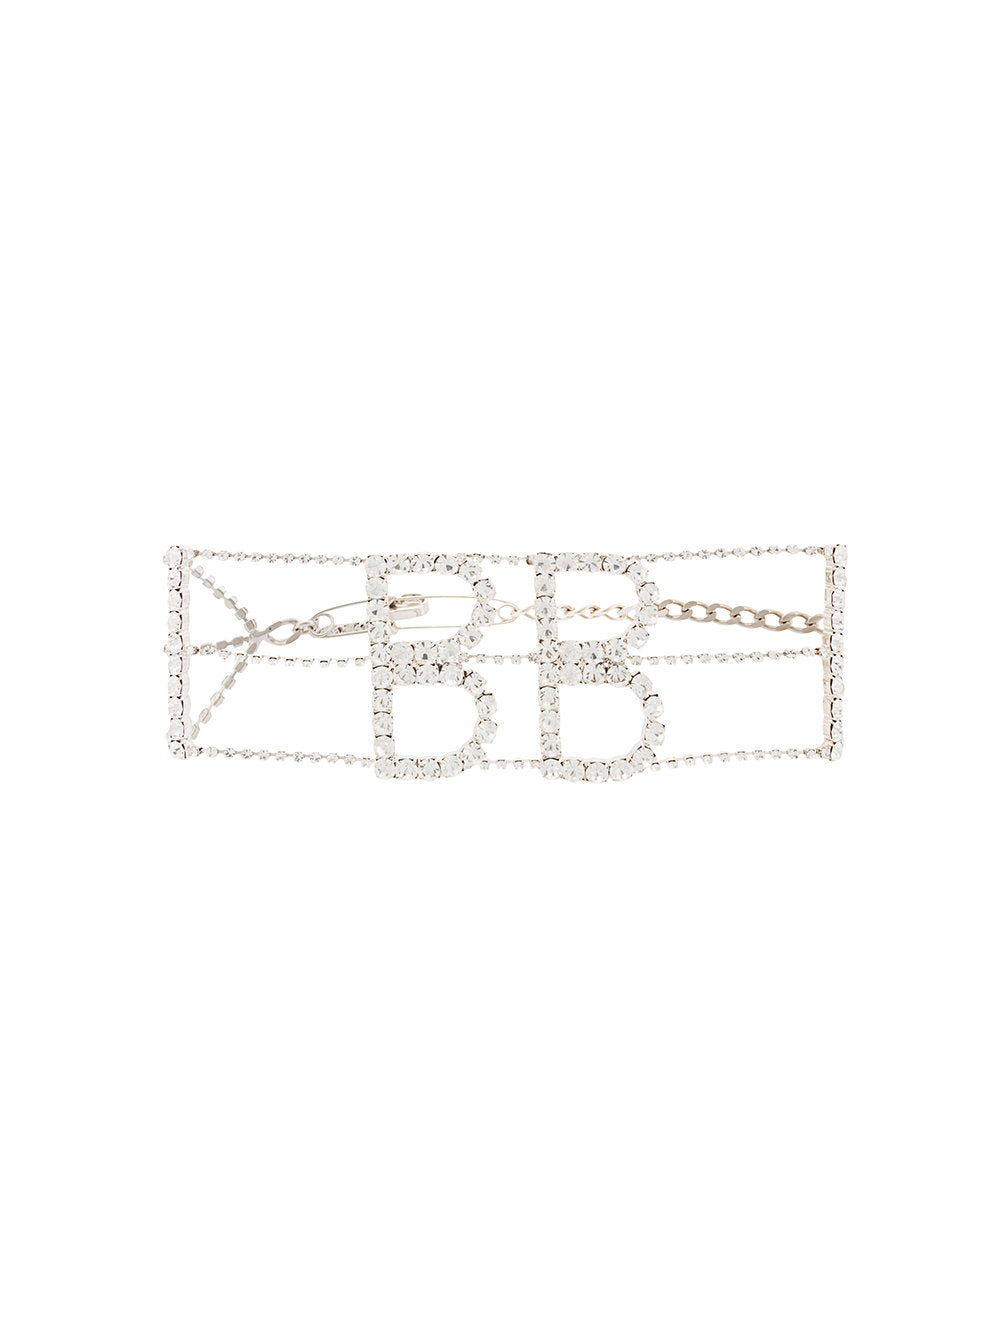 Barbara Bologna Crystal Brave Choker Necklace - 1